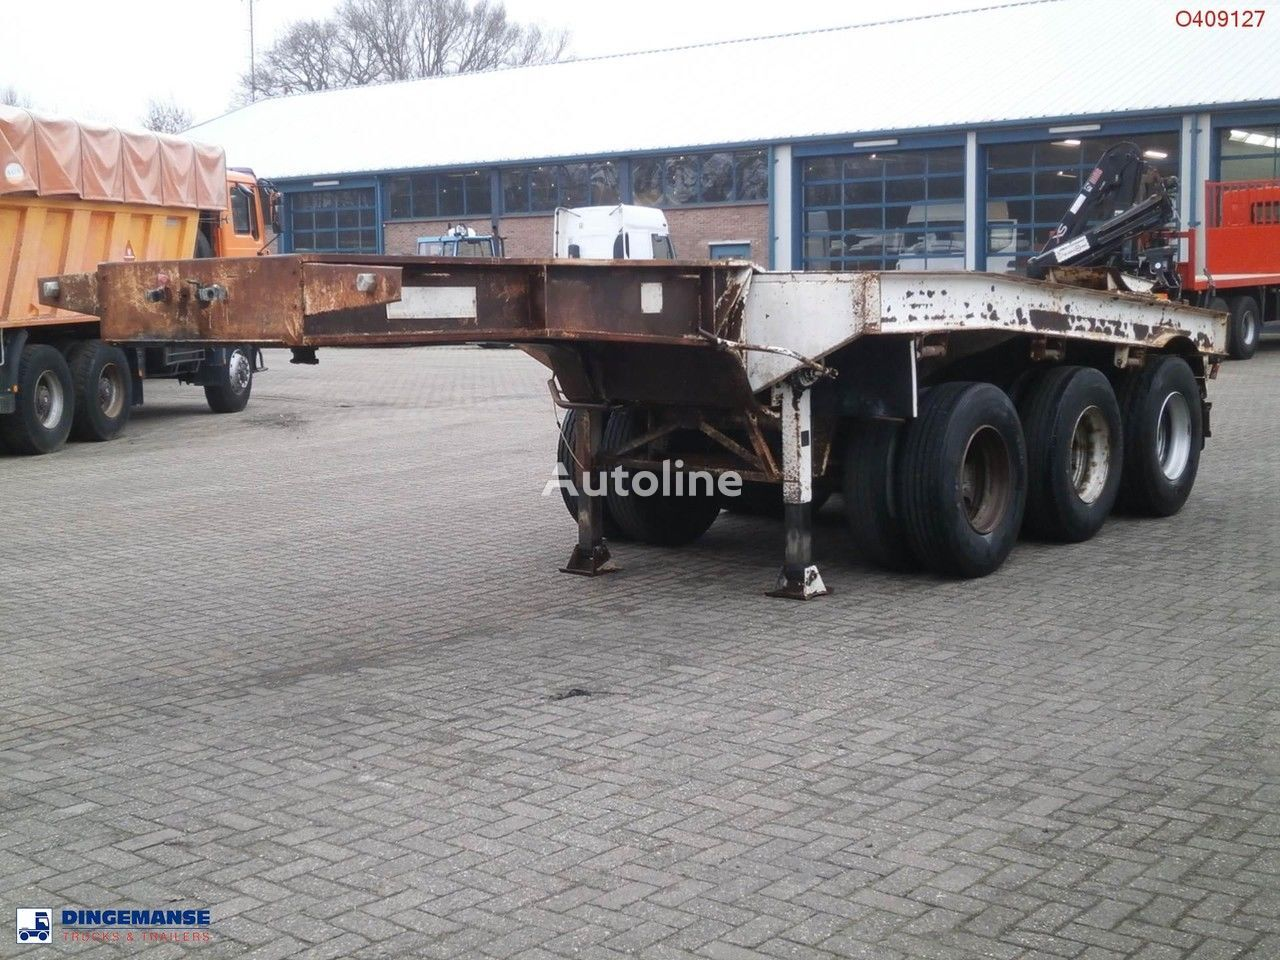 TRAYL-ONA 3-axle dolly trailer / 62000 kg container oplegger